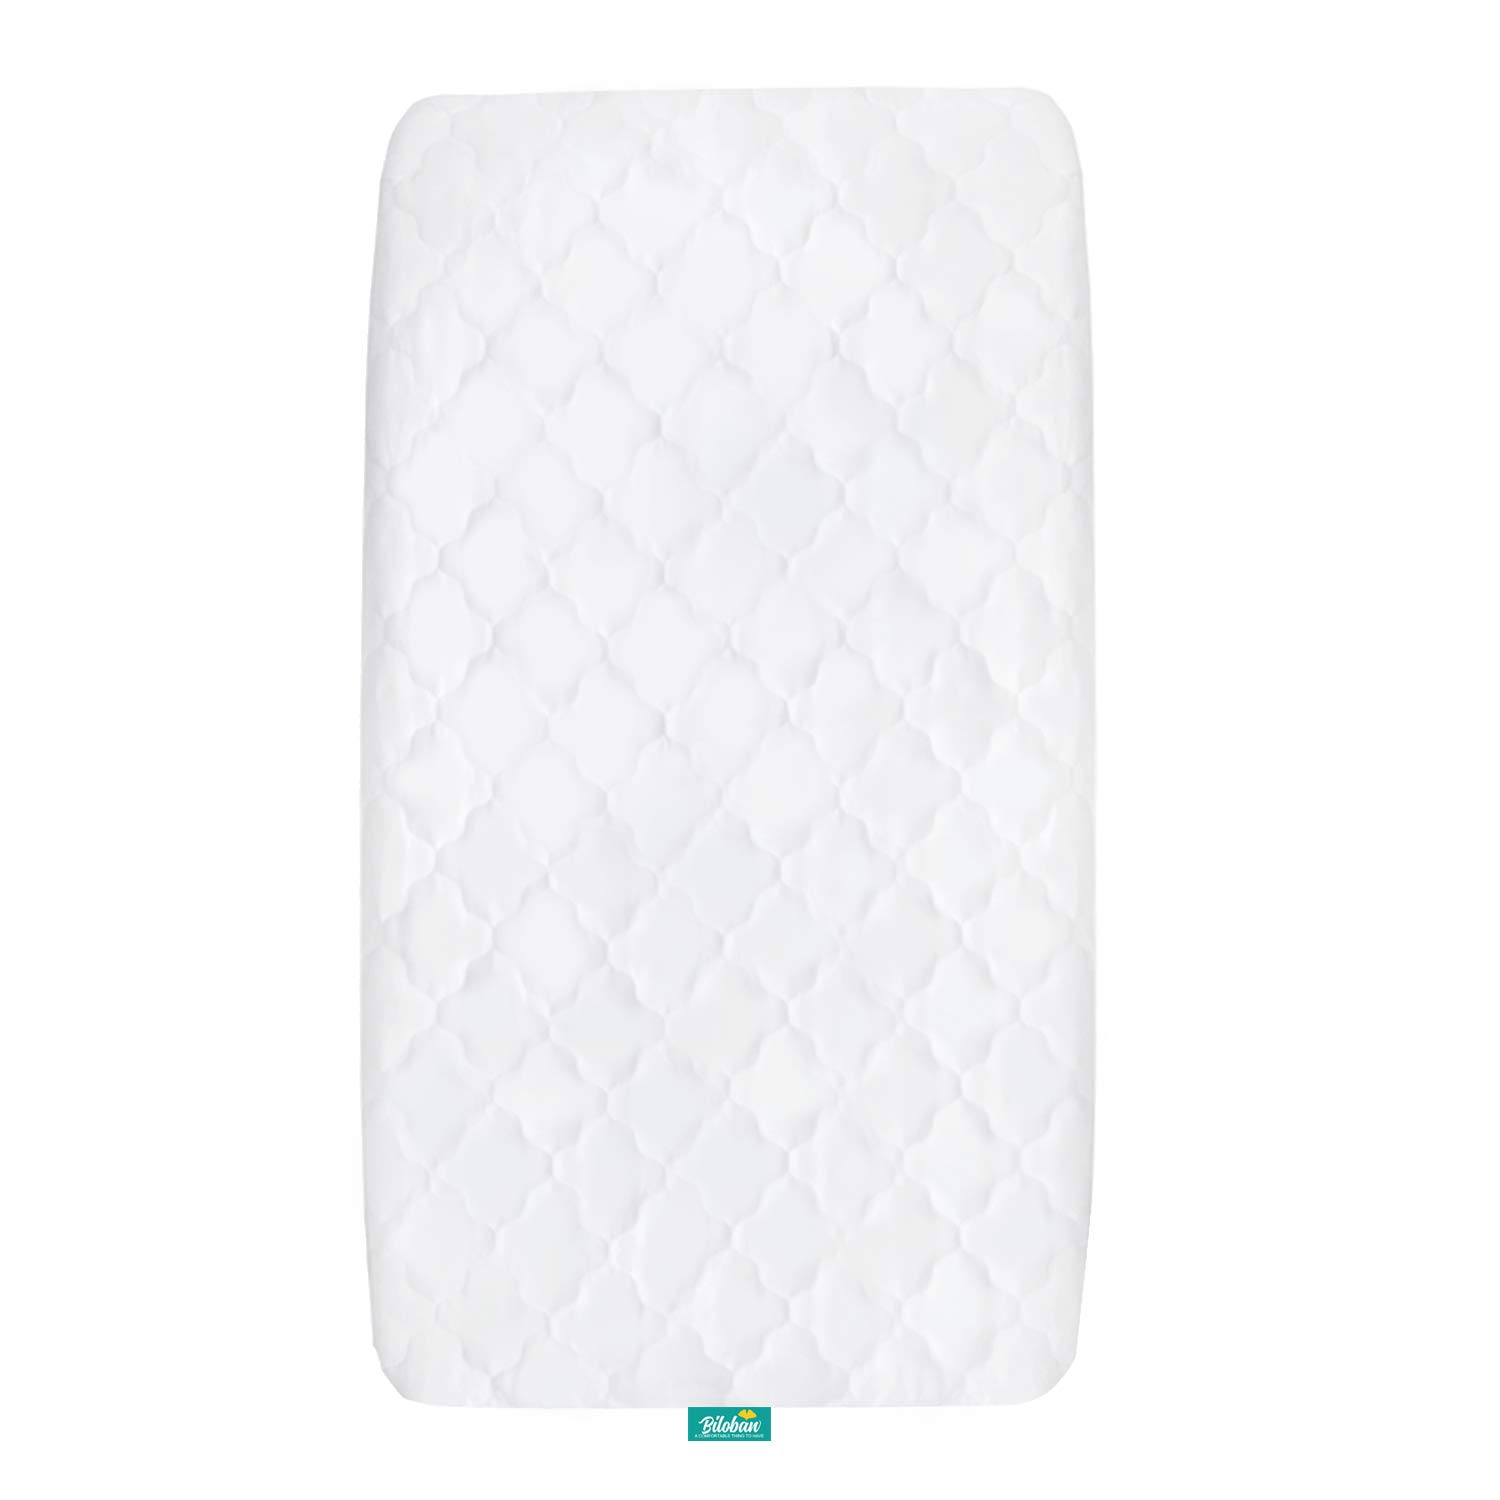 """Cradle Mattress Pad Cover for 36"""" × 18"""" Standard Cradle Mattress, Ultra Soft Microfiber Surface and Extra Waterproof Layer, Washer & Dryer Friendly"""